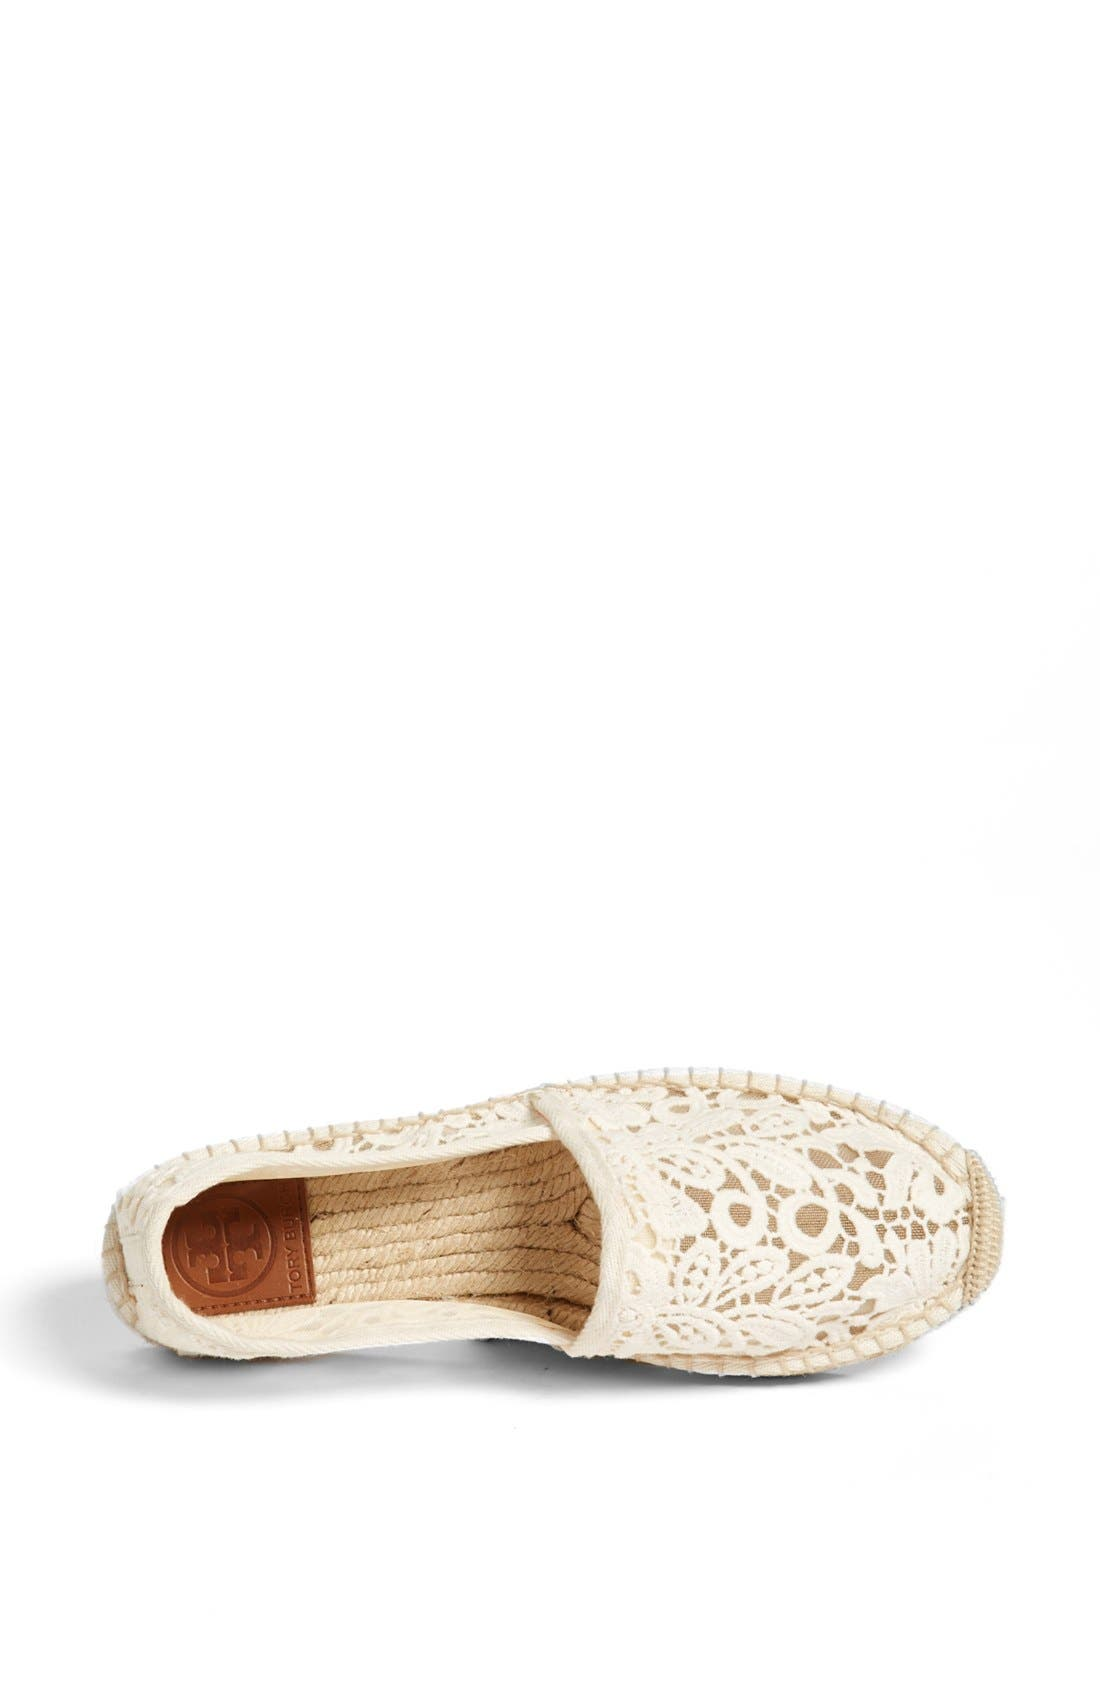 Alternate Image 3  - Tory Burch 'Abbe' Espadrille